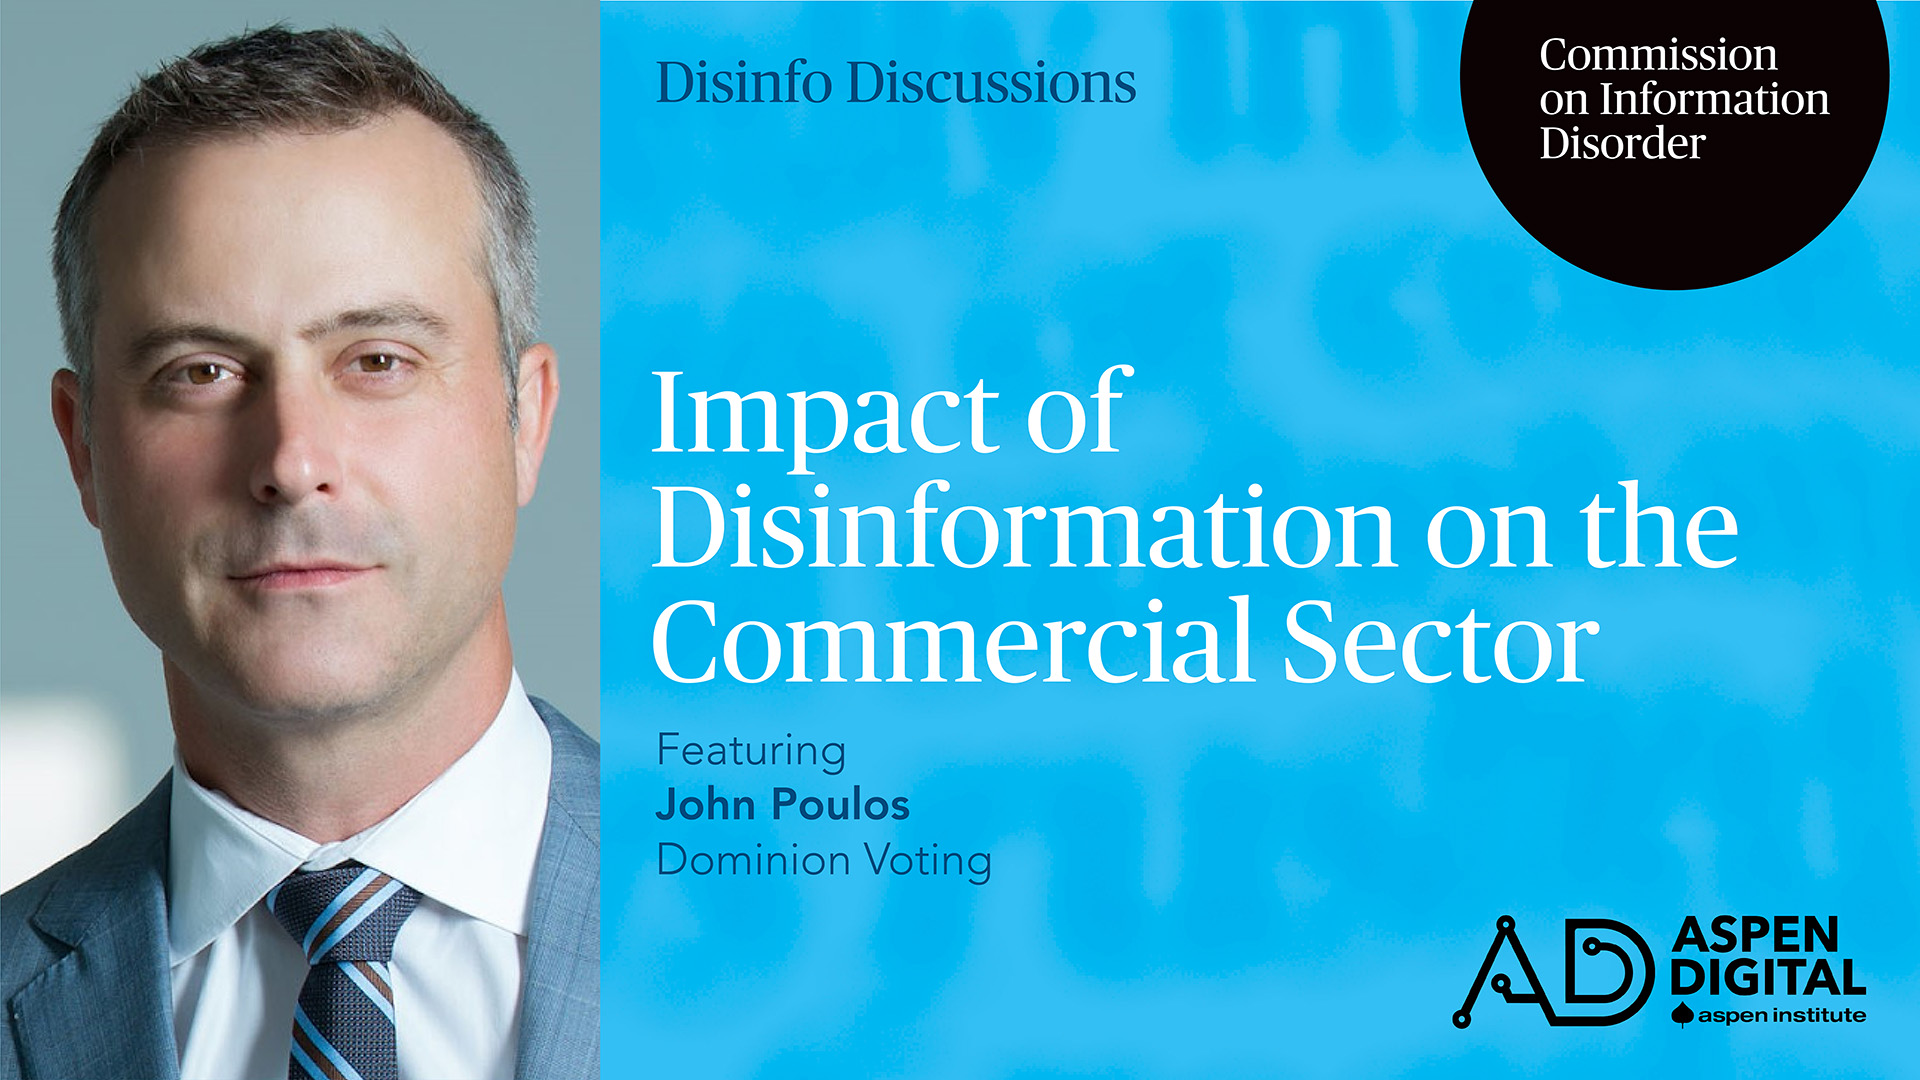 Impact of Disinformation on Brands